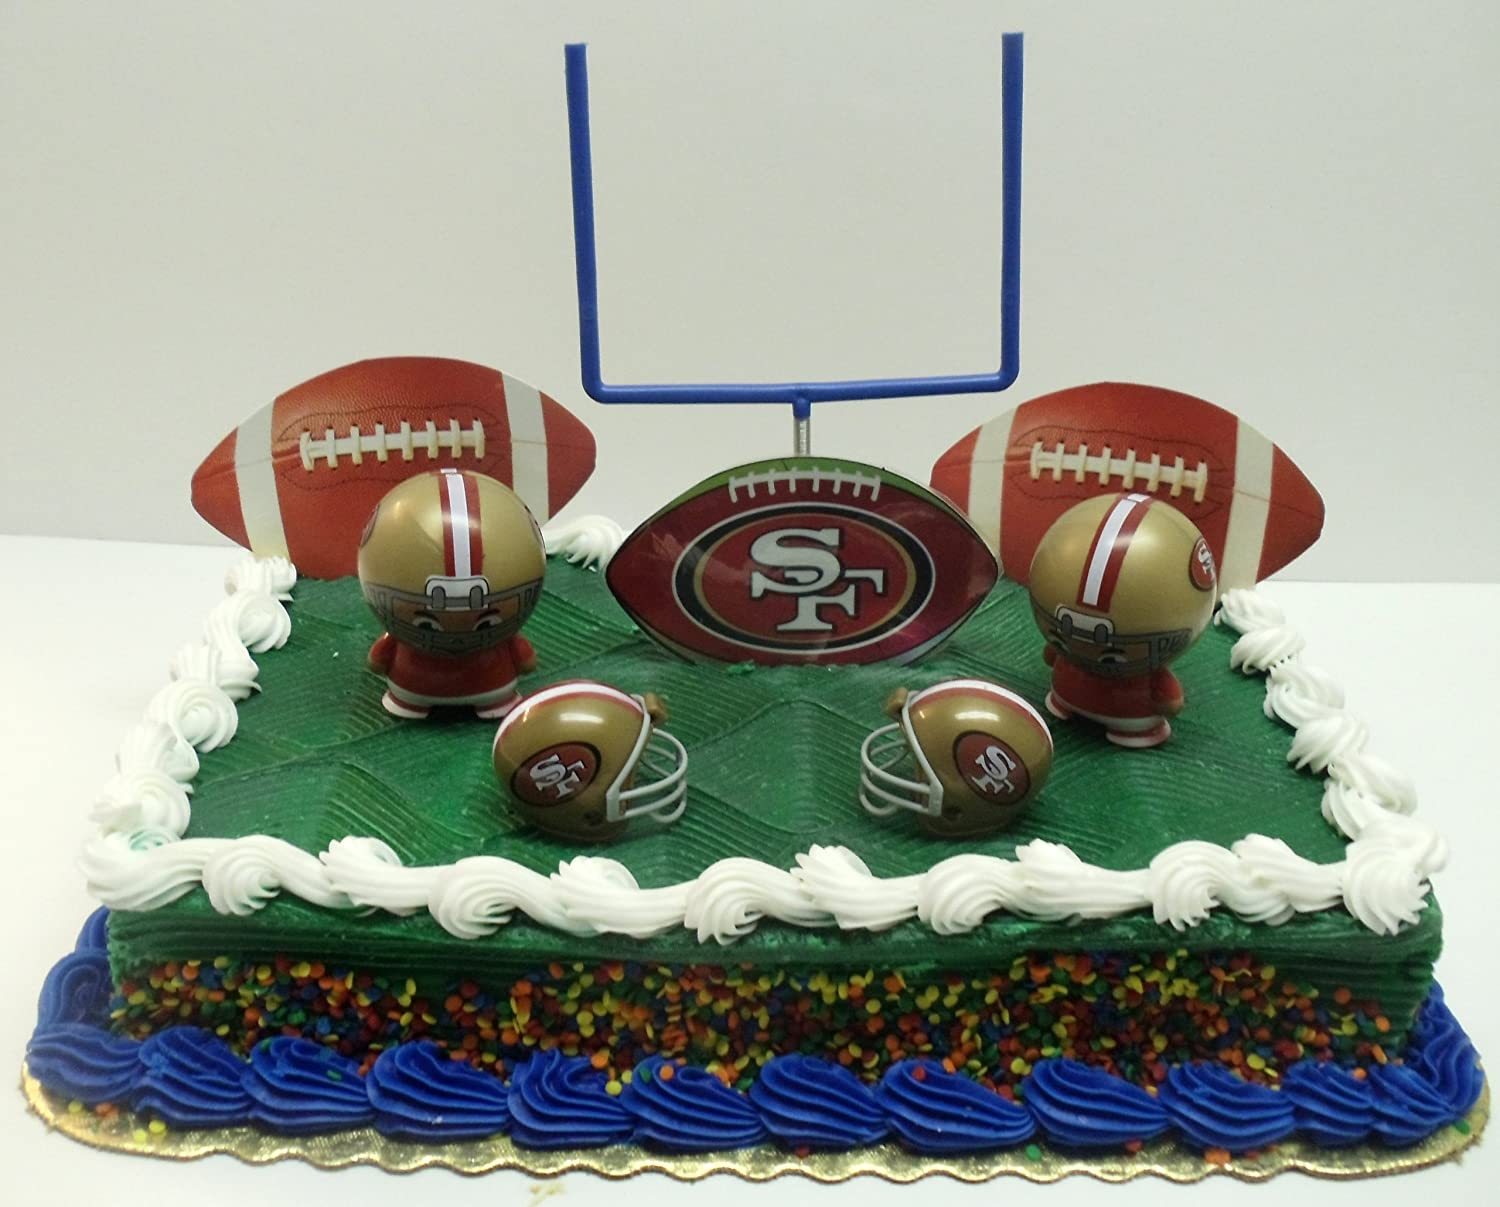 Football San Francisco Ers Birthday Cake Topper Set Featuring Helmets And Decorative Pieces Toys